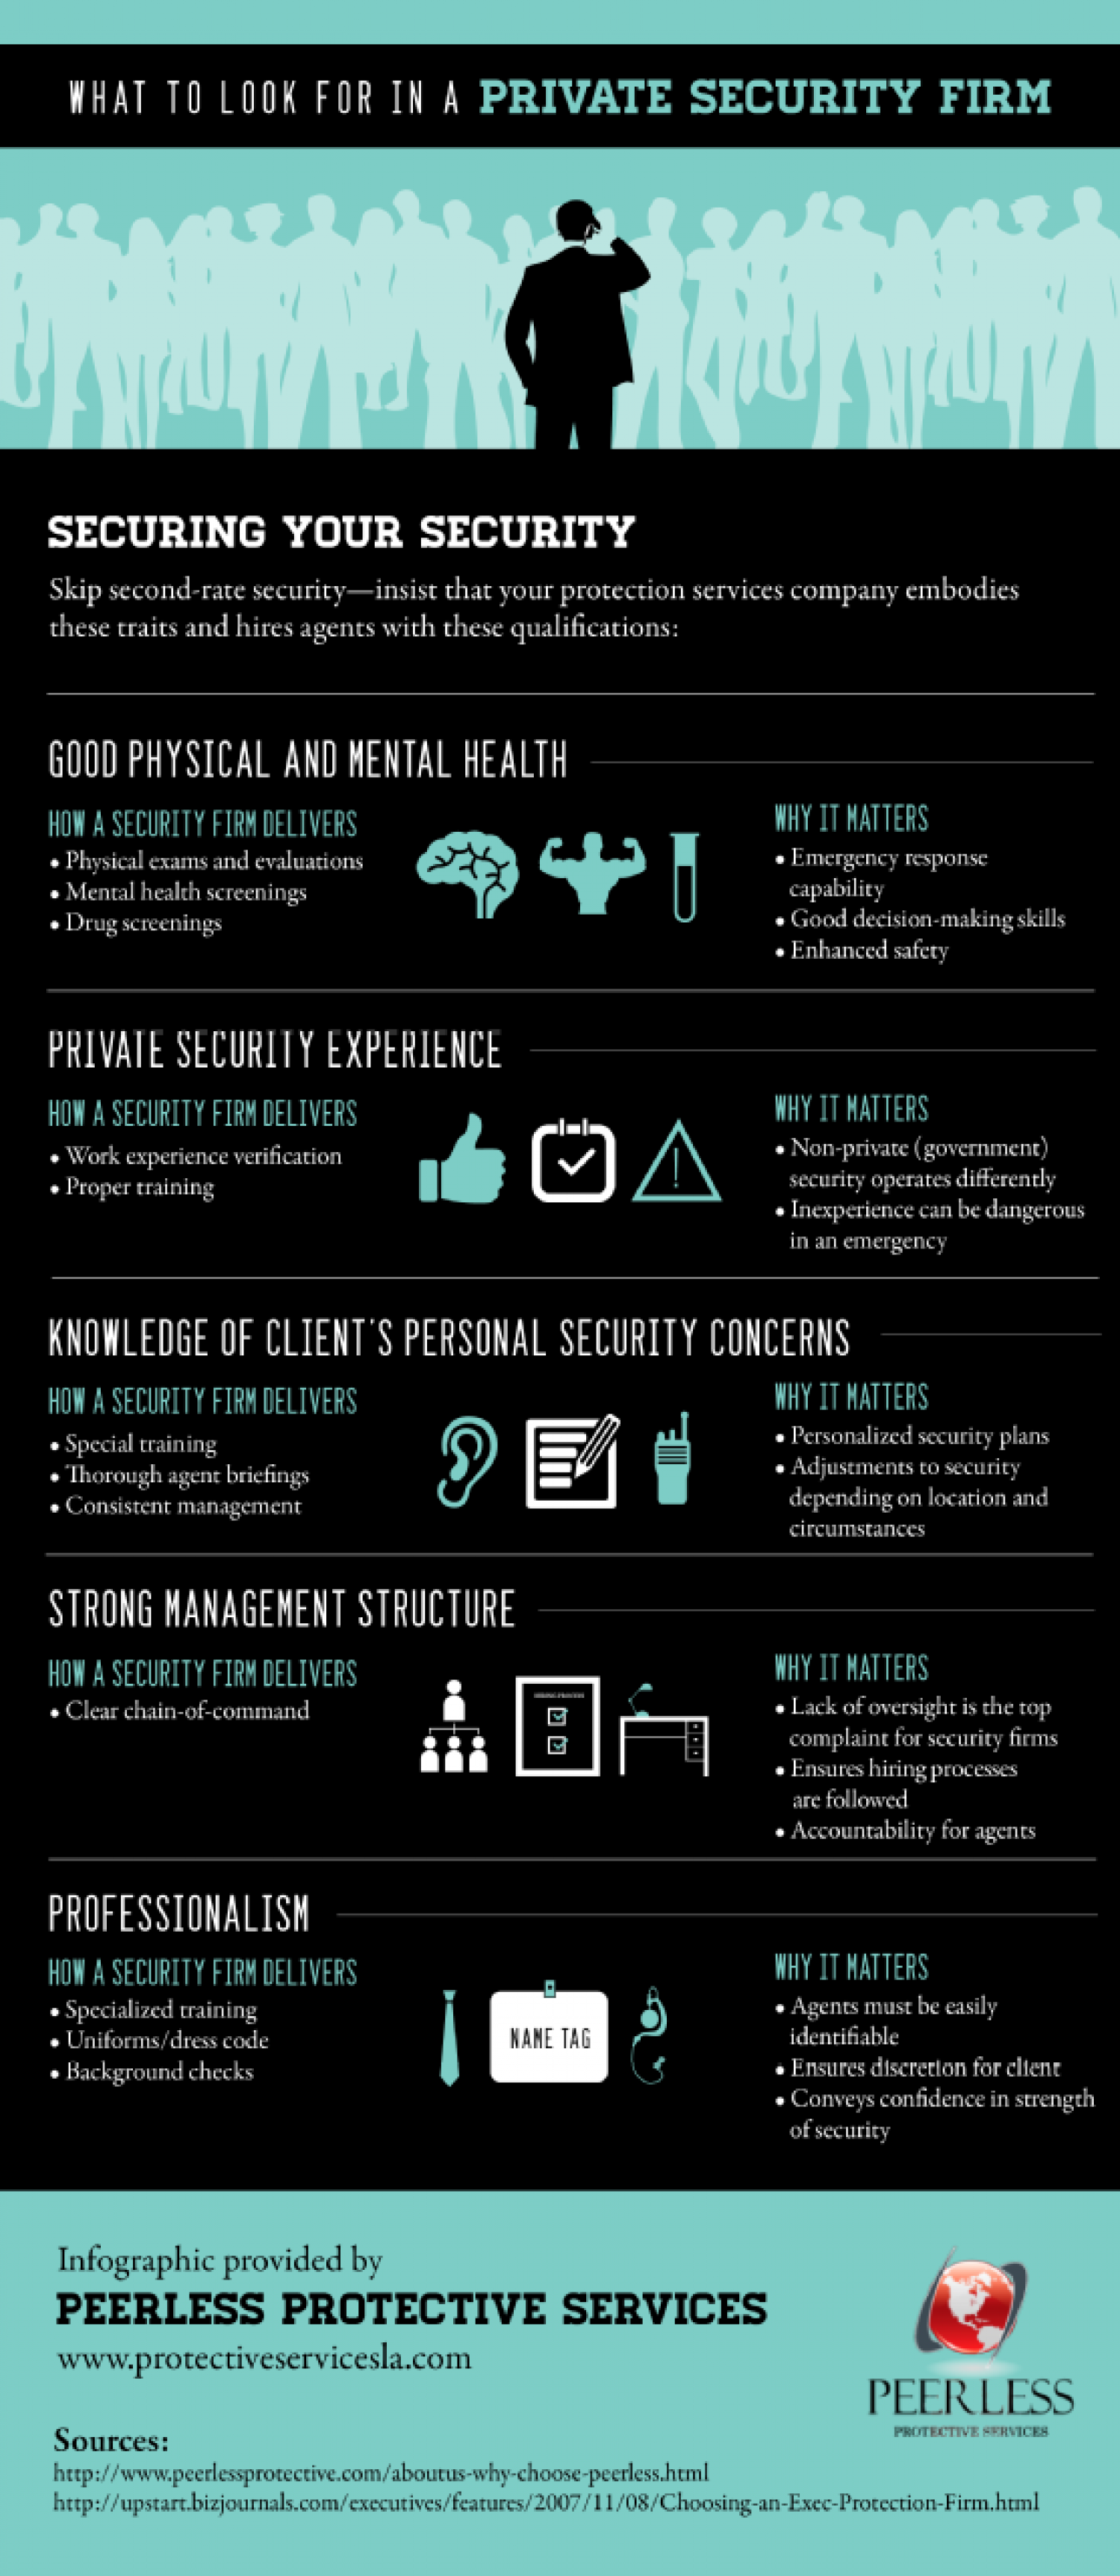 What To Look For In A Private Security Firm Infographic